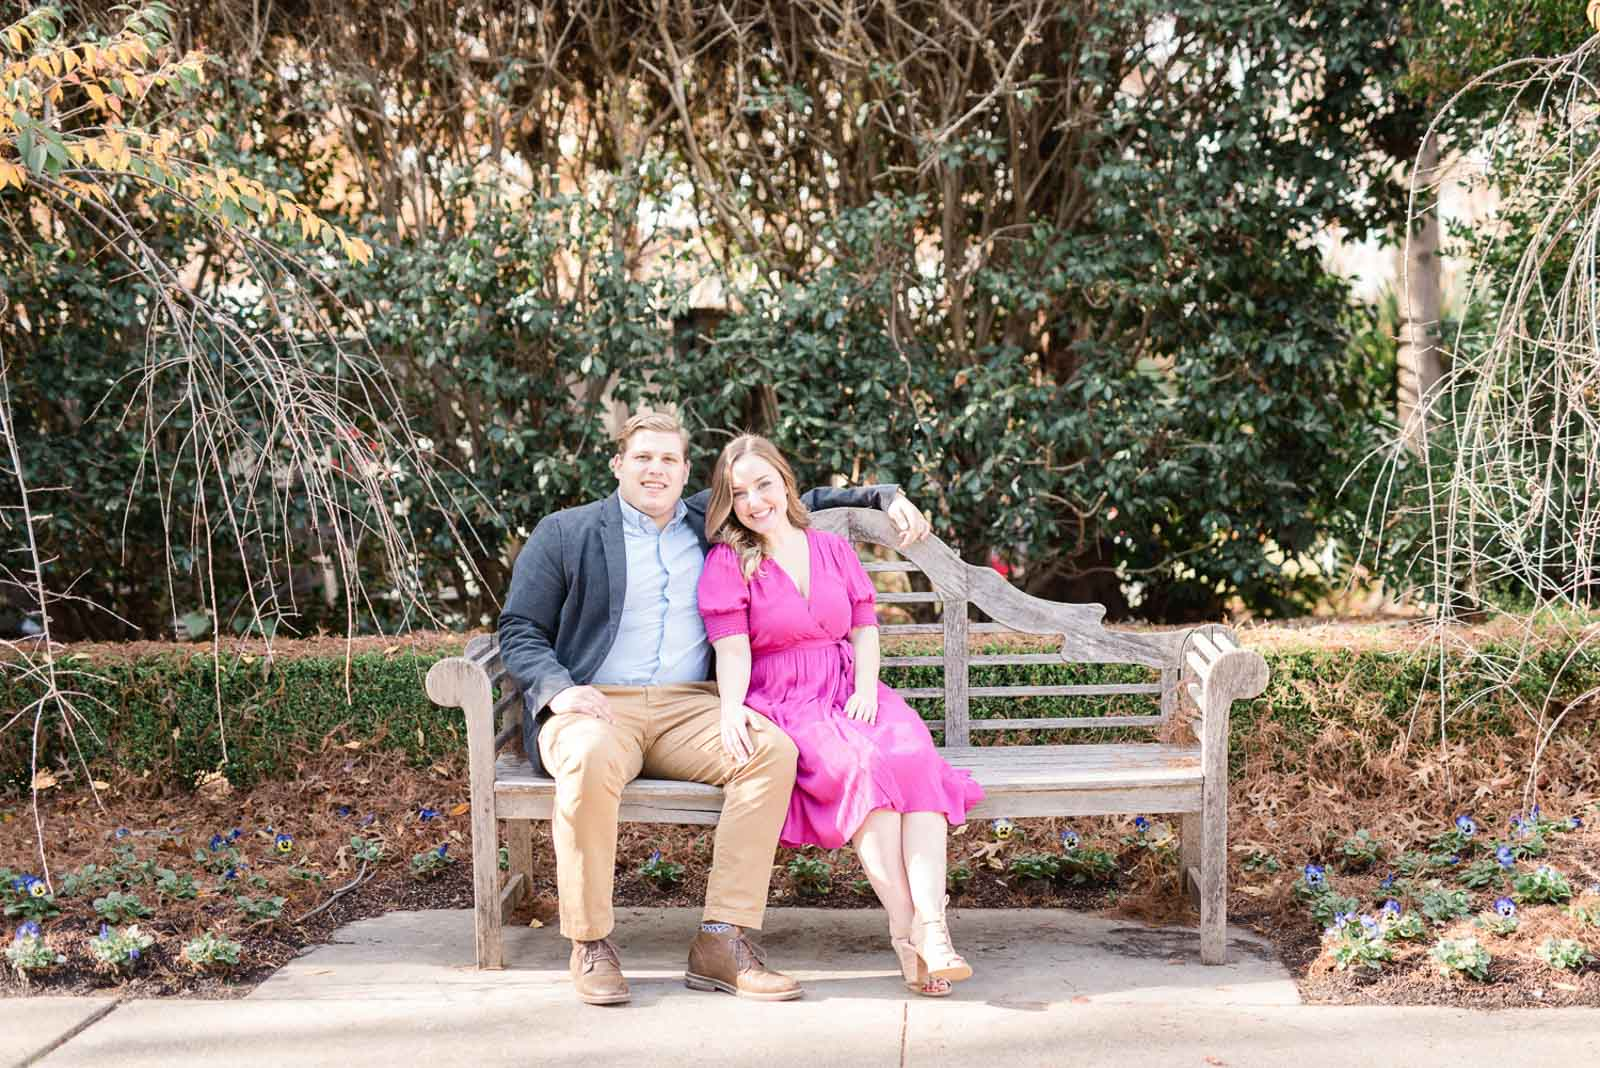 Dallas Arboretum Engagement-JenSymes-10.jpg